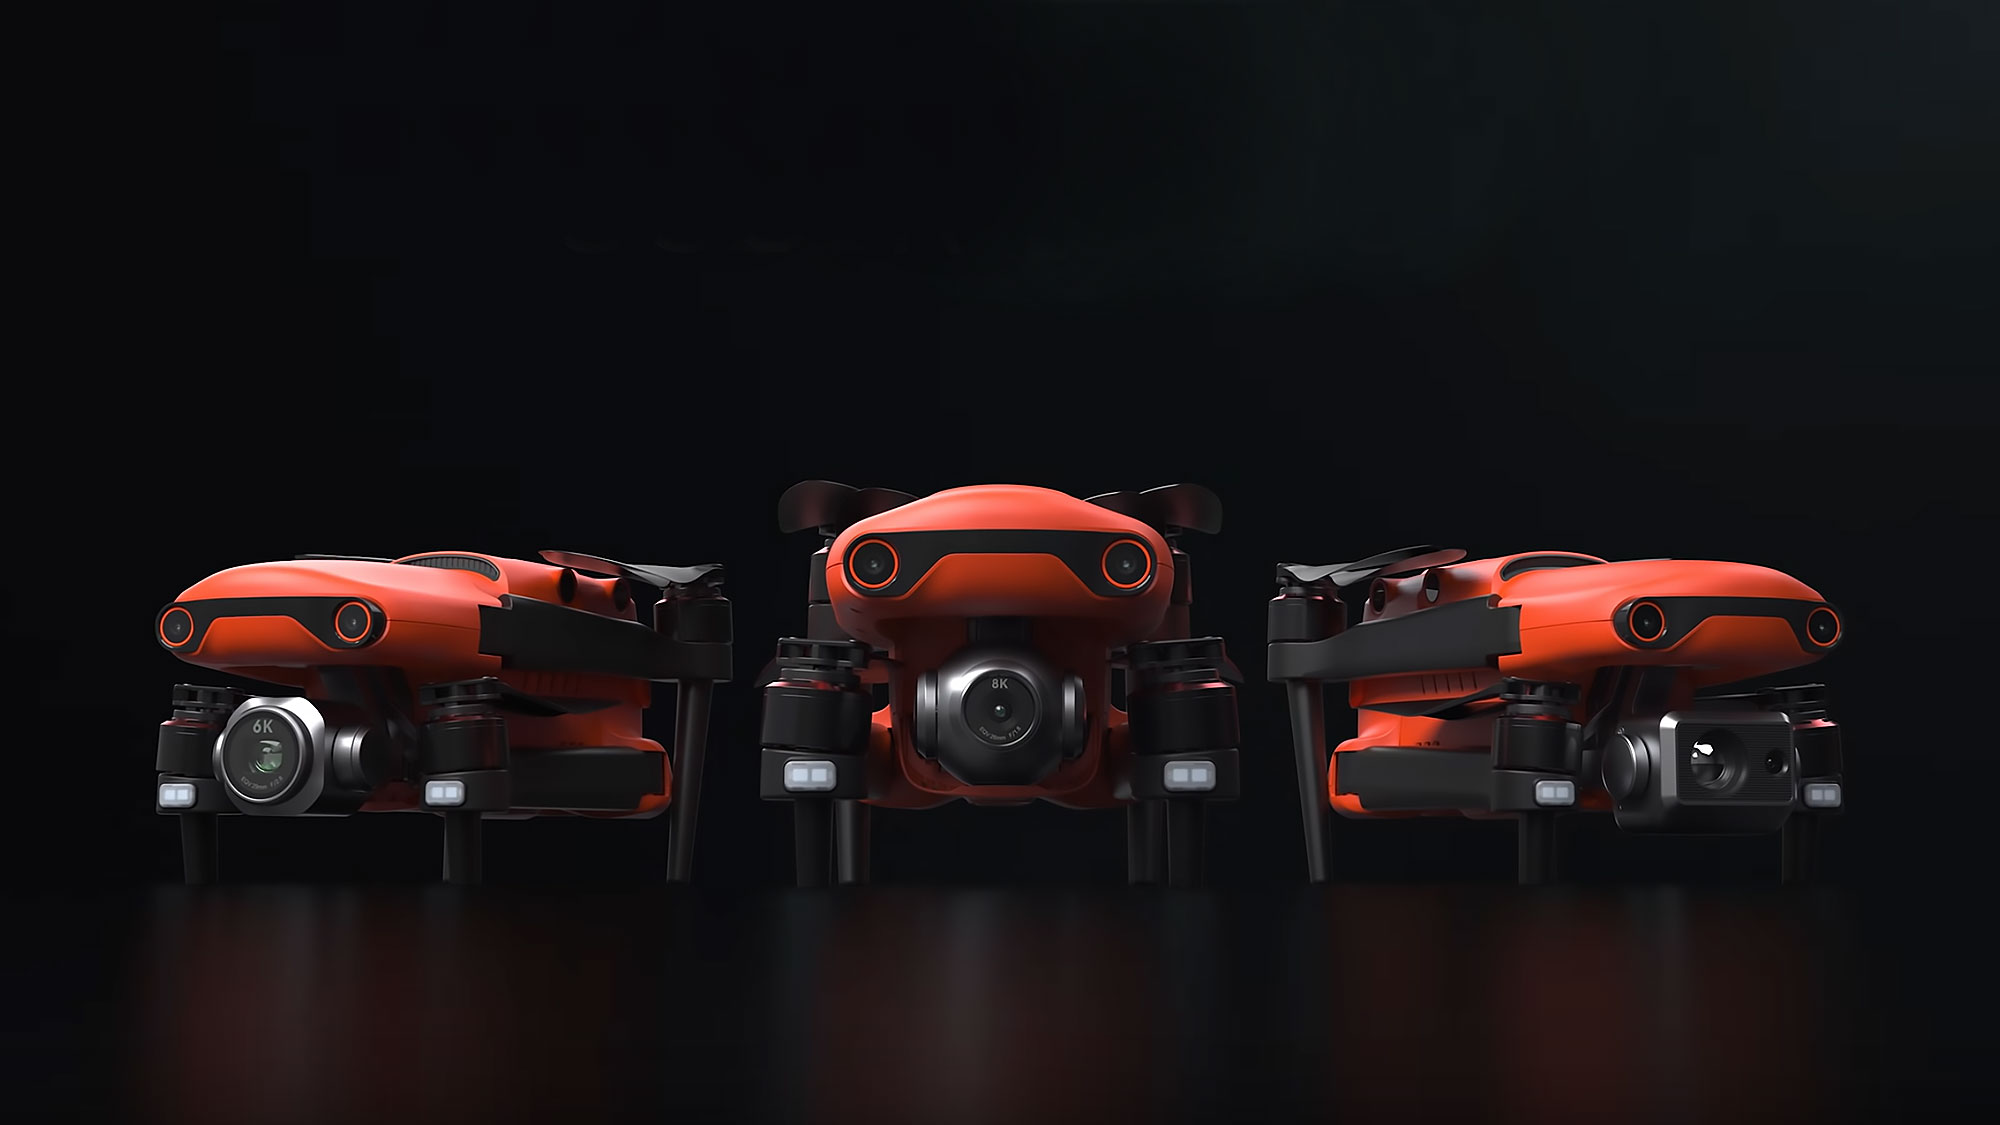 Autel Robotics' EVO 2 Series Imaging Drone Is The First 8K Folding ...